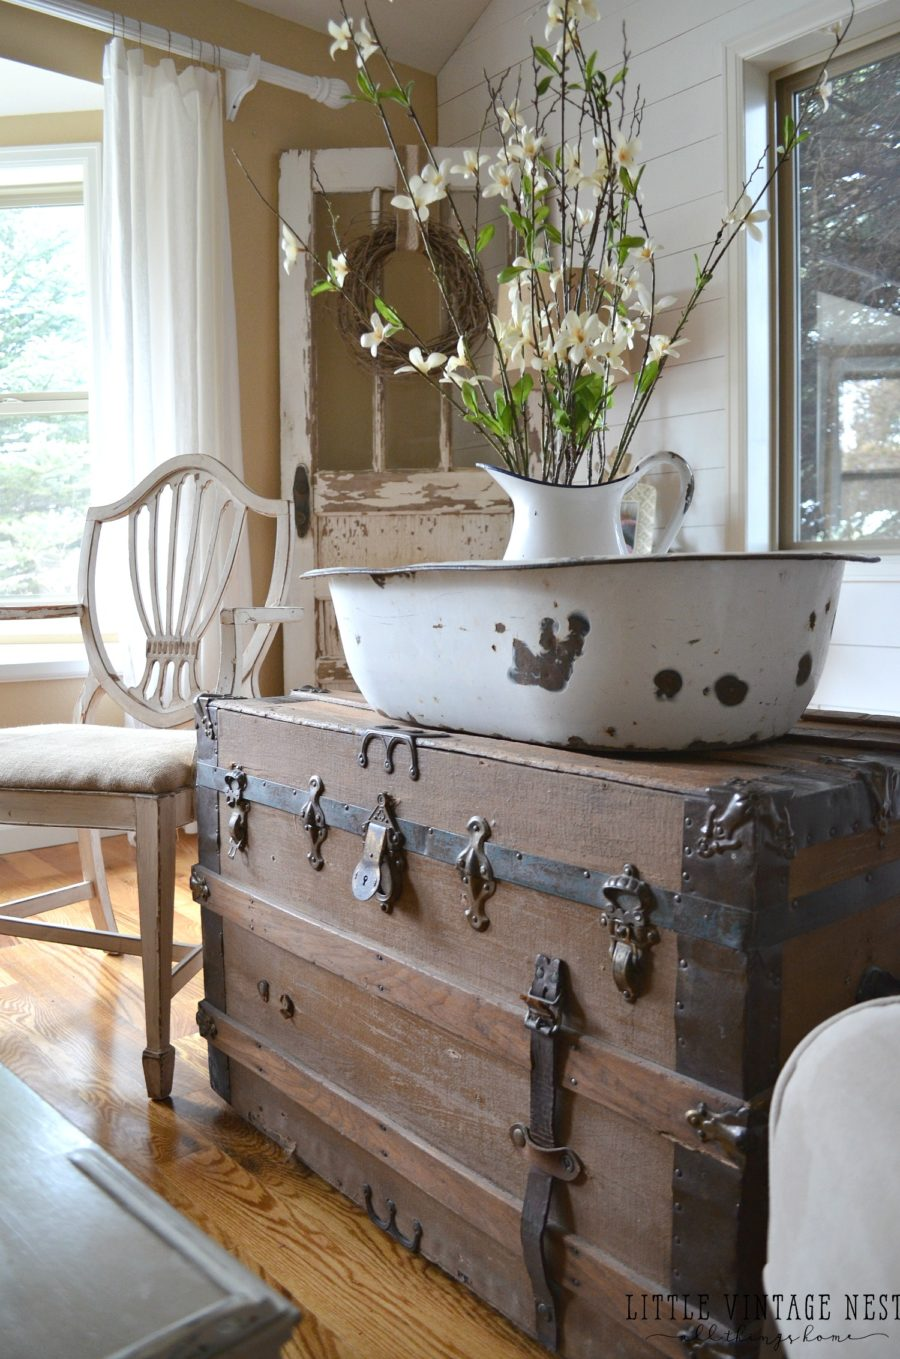 House Decors Ideas 15 Vintage Decor Ideas That Are Sure To Inspire